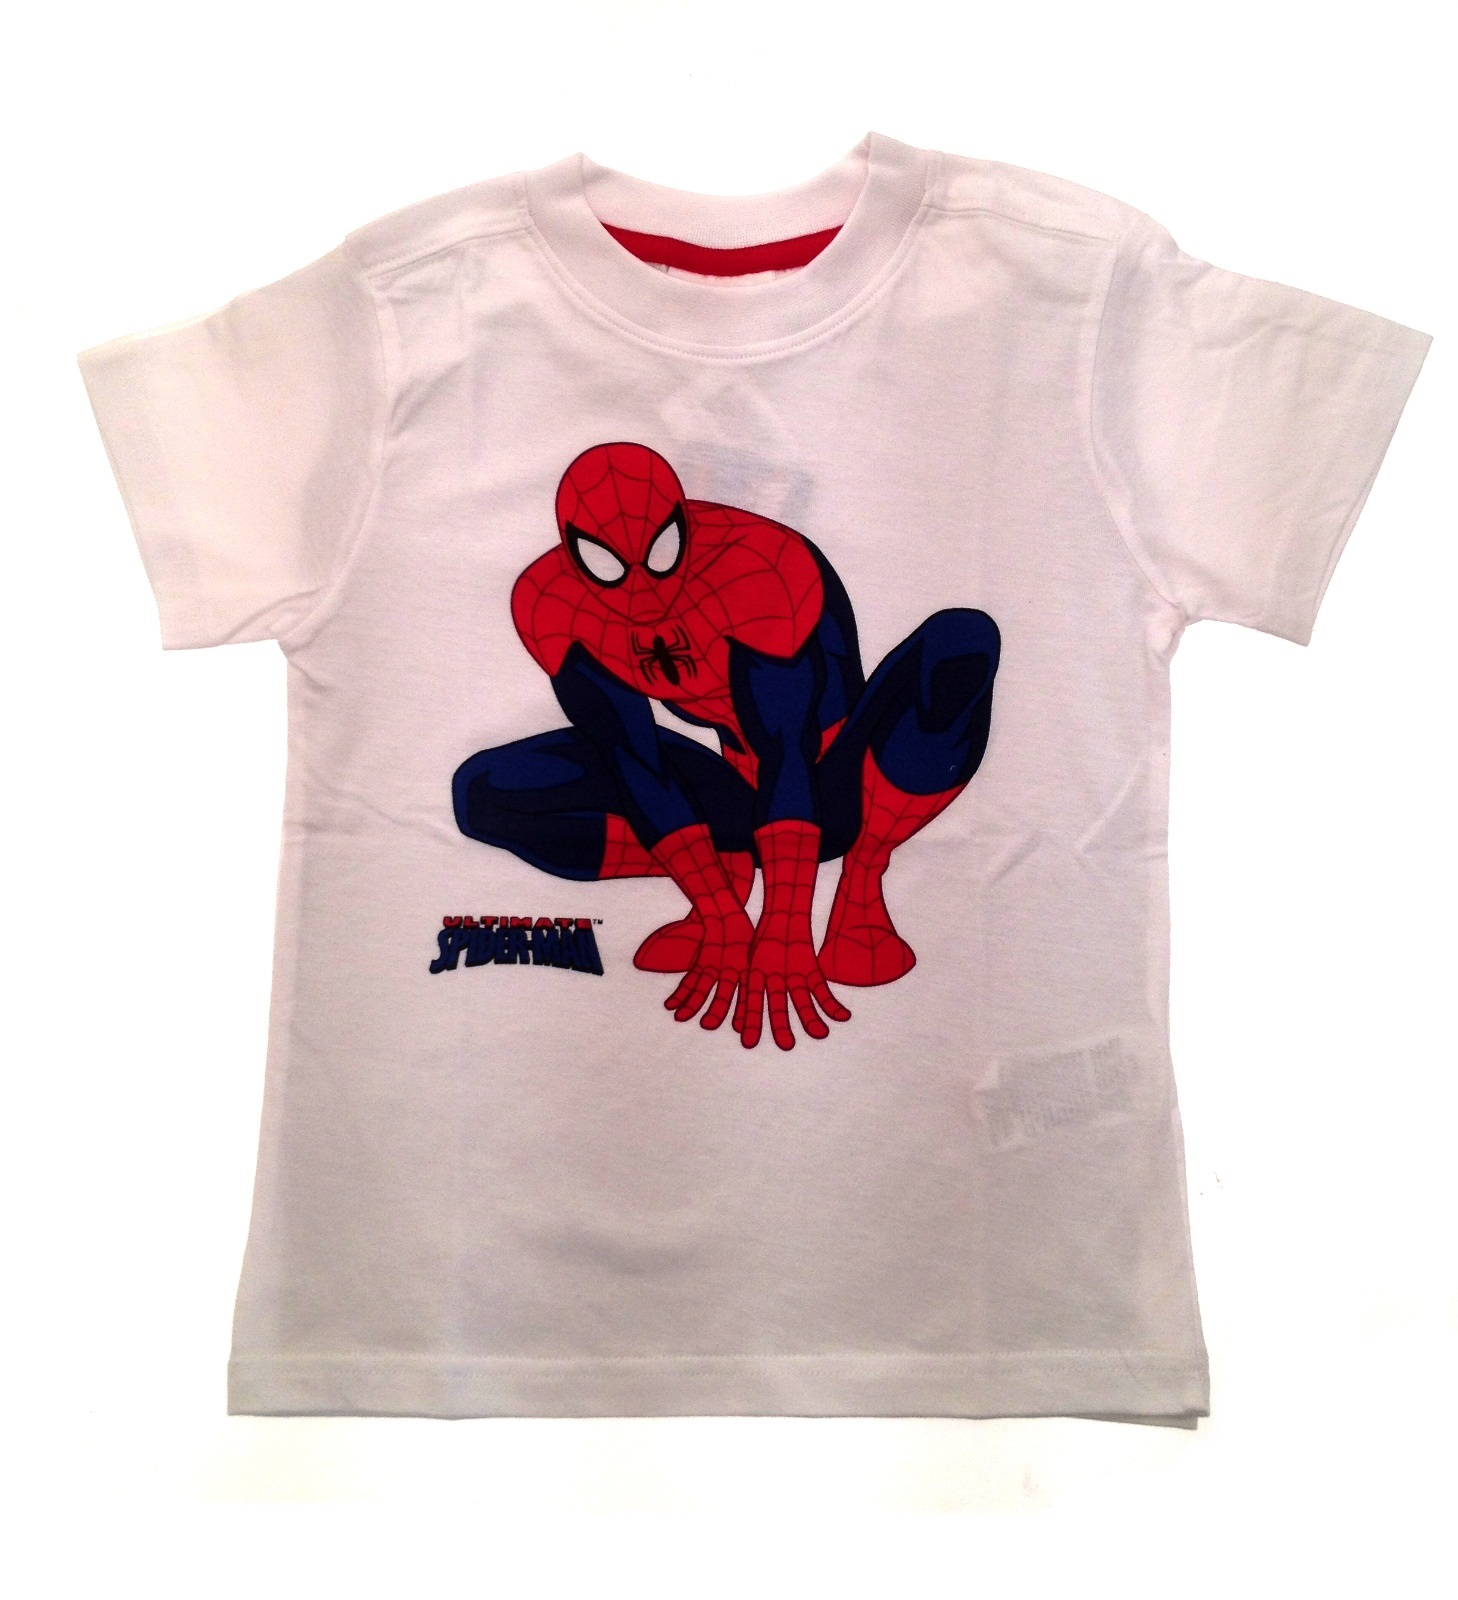 Boys short sleeve ultimate spiderman t shirt kids summer for What size shirt for 8 year old boy